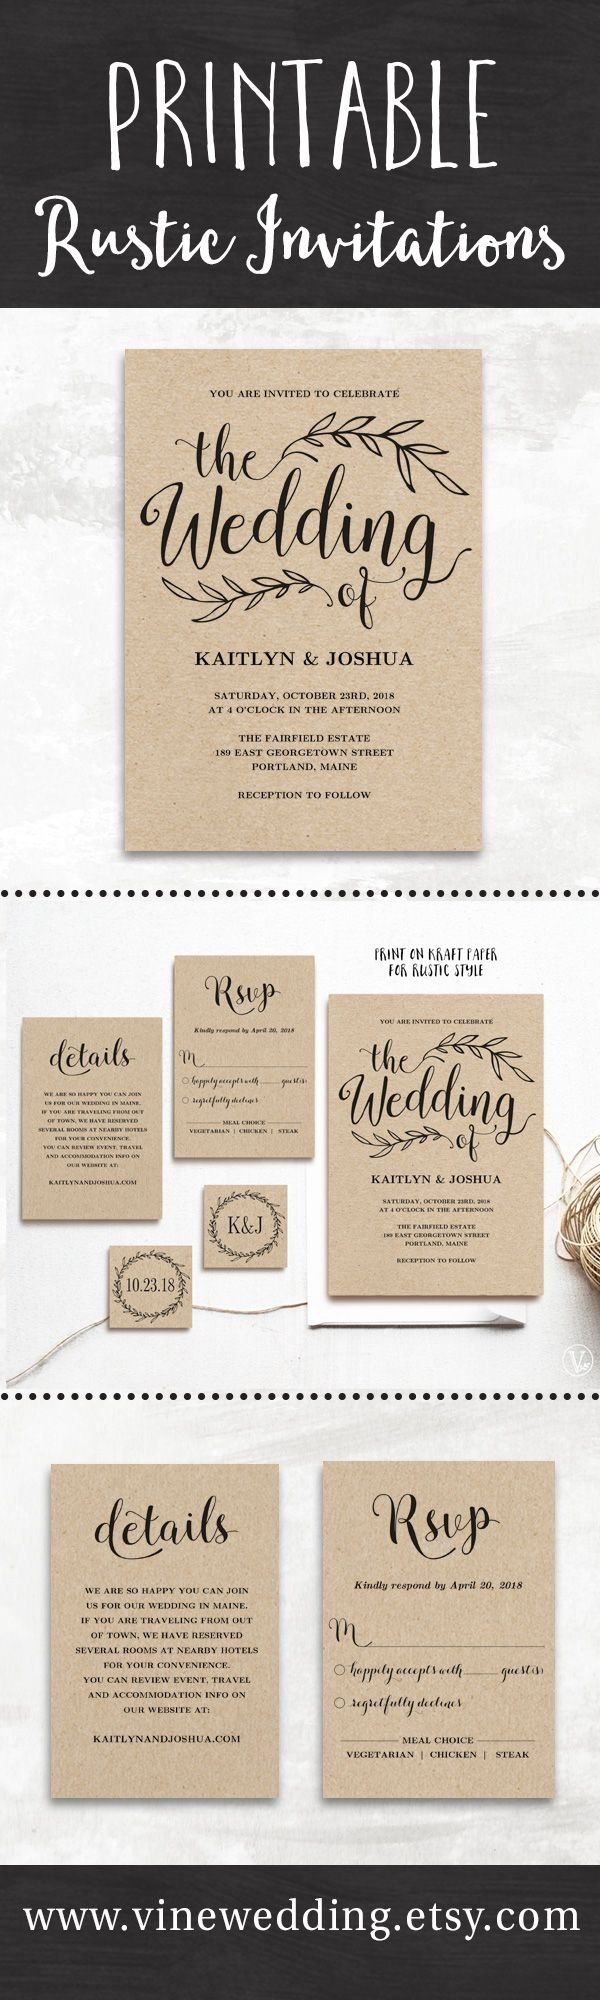 wedding invitations unique diy%0A Beautiful rustic wedding invitations  Editable instant download templates  you can print as many as you